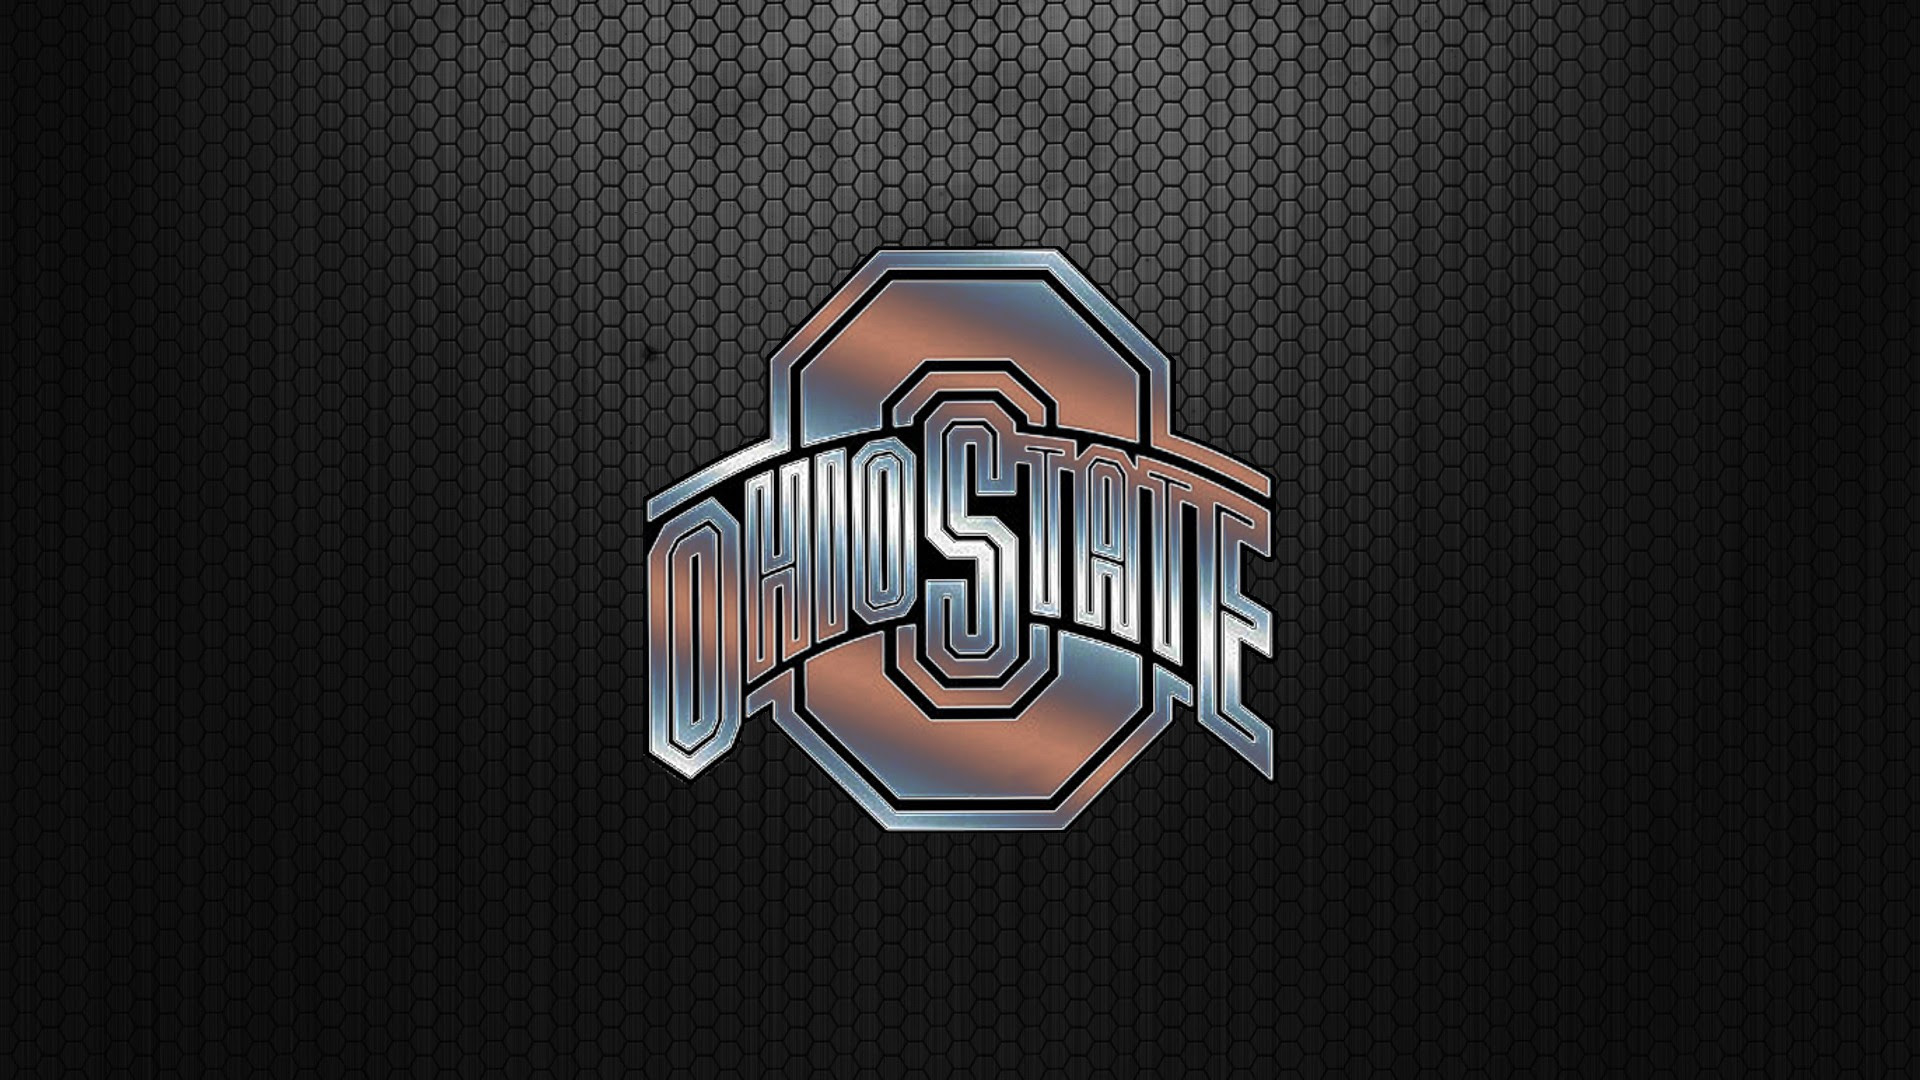 Ohio State Football HD Wallpapers (75+ images)